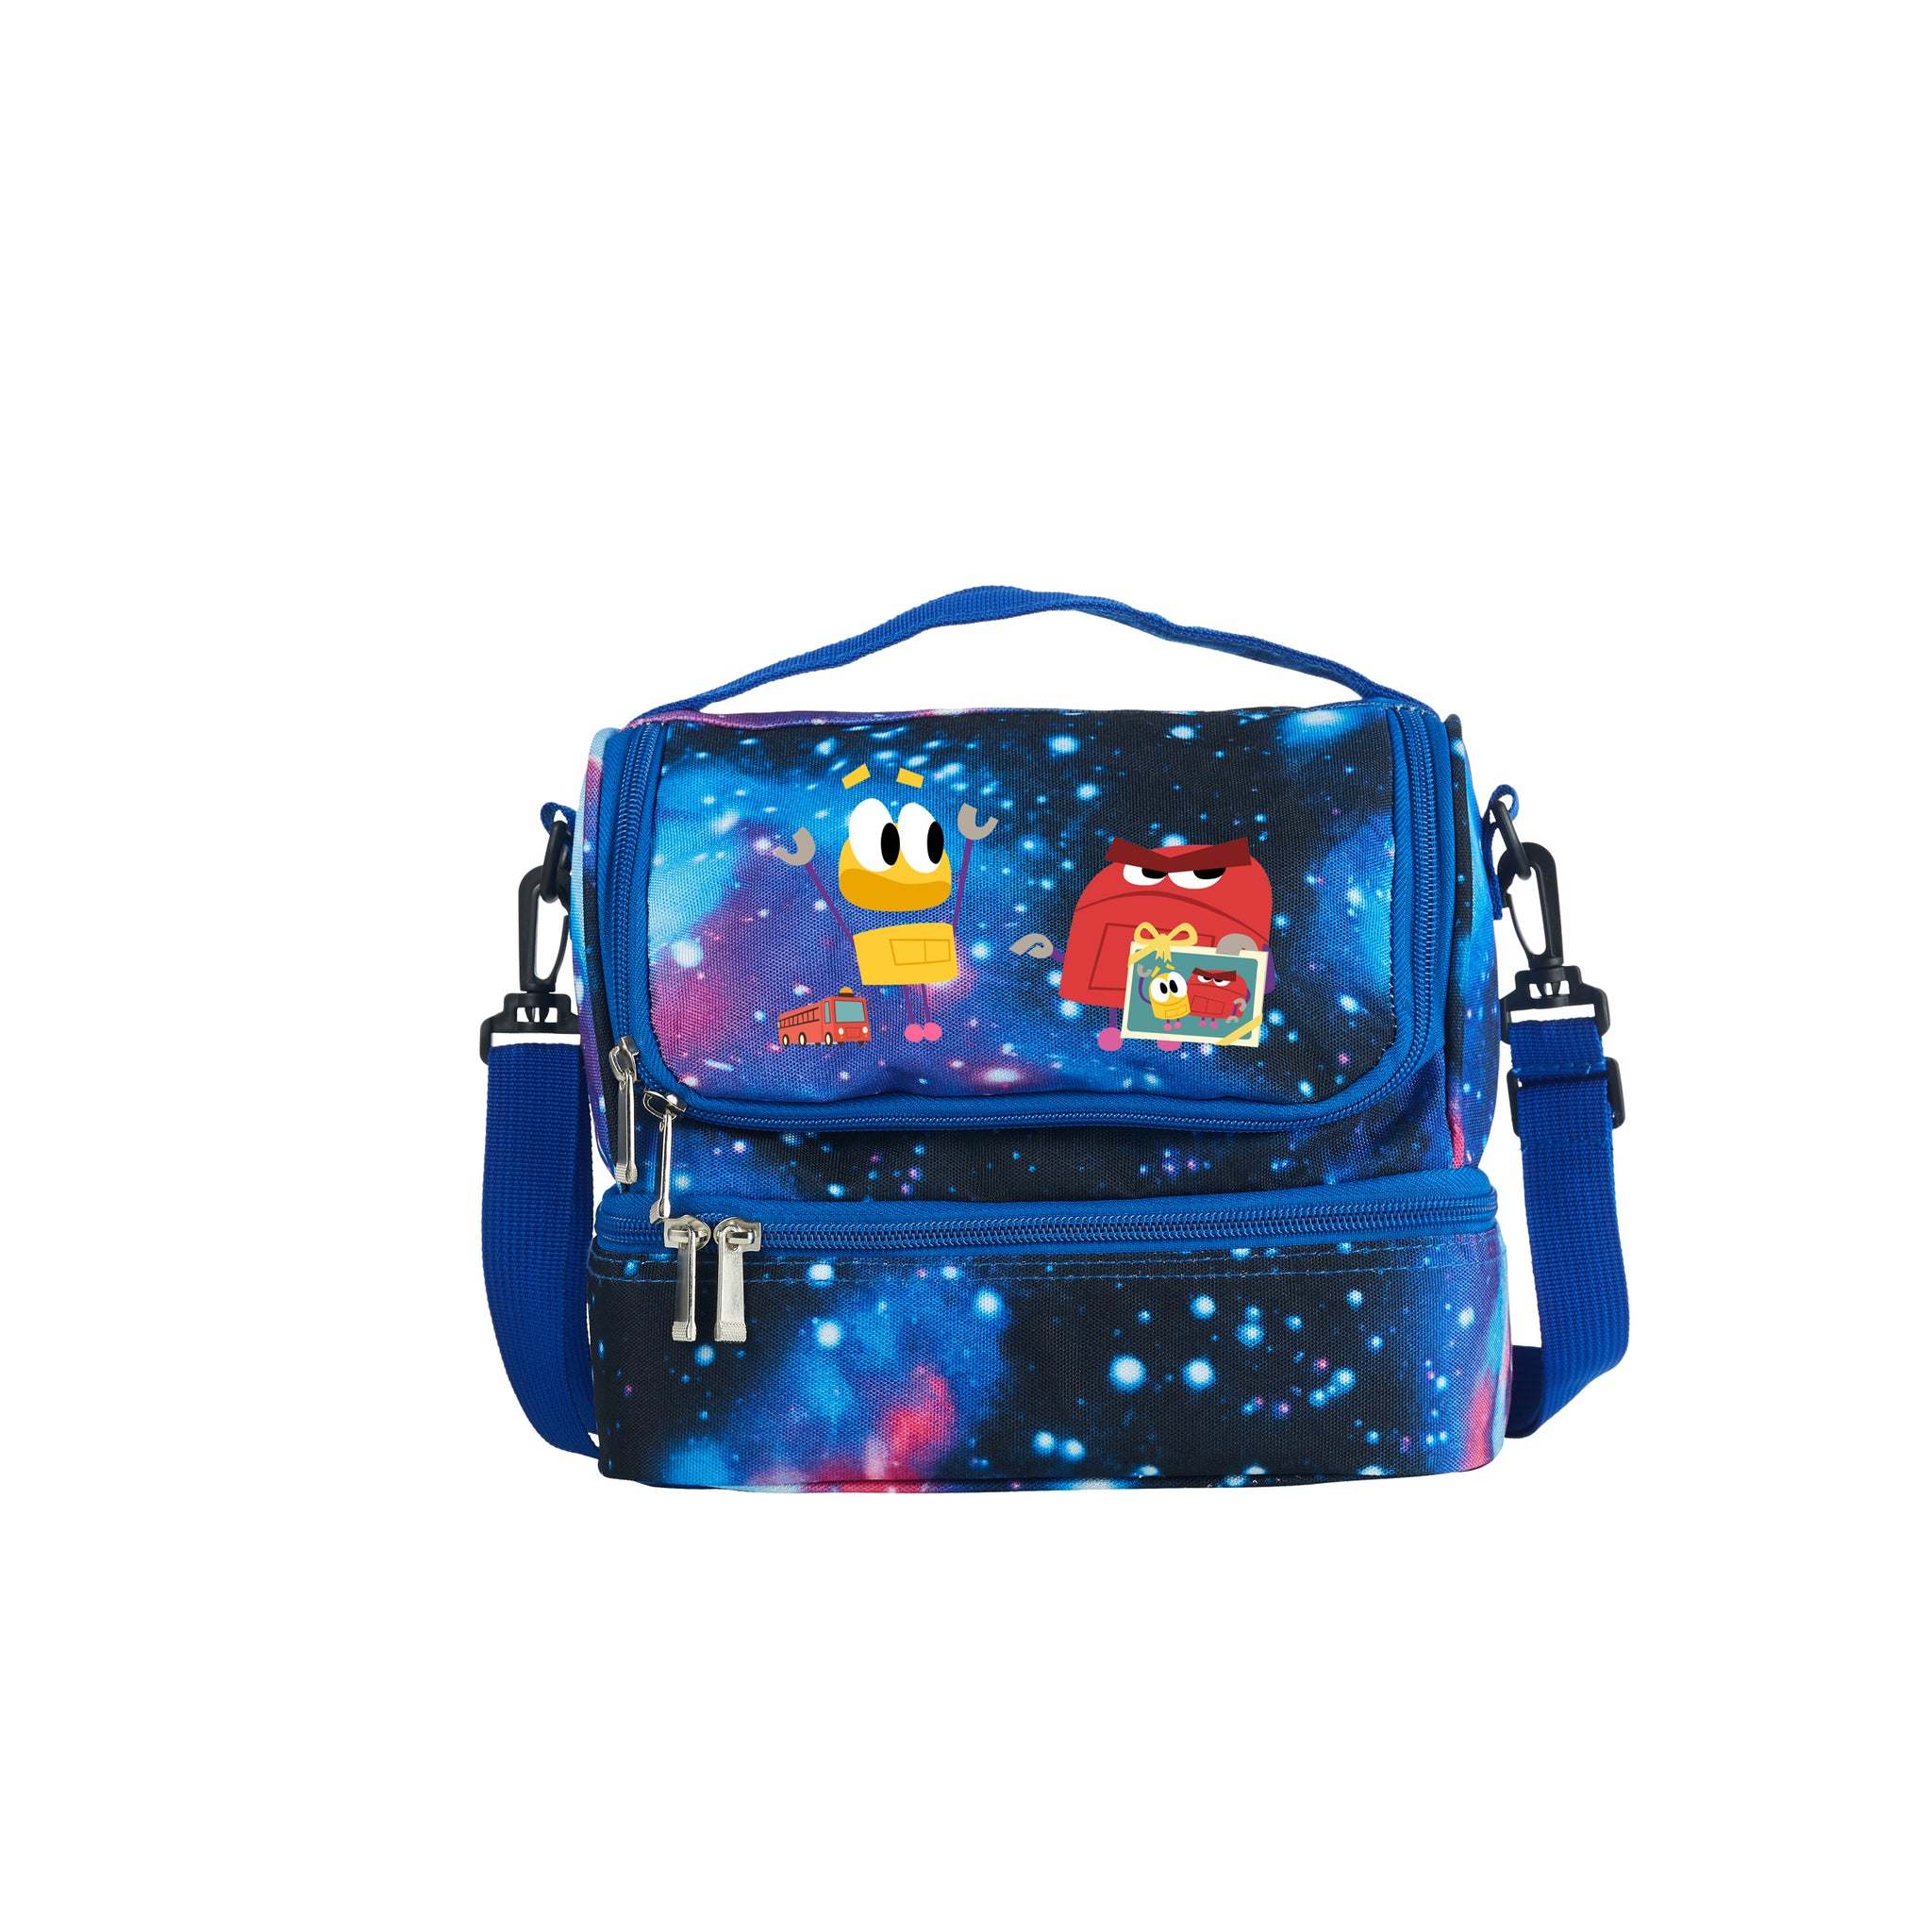 Evan And Gregg Spiridellis 2019 StoryBots Series Two Compartment Galaxy Lunch Bag